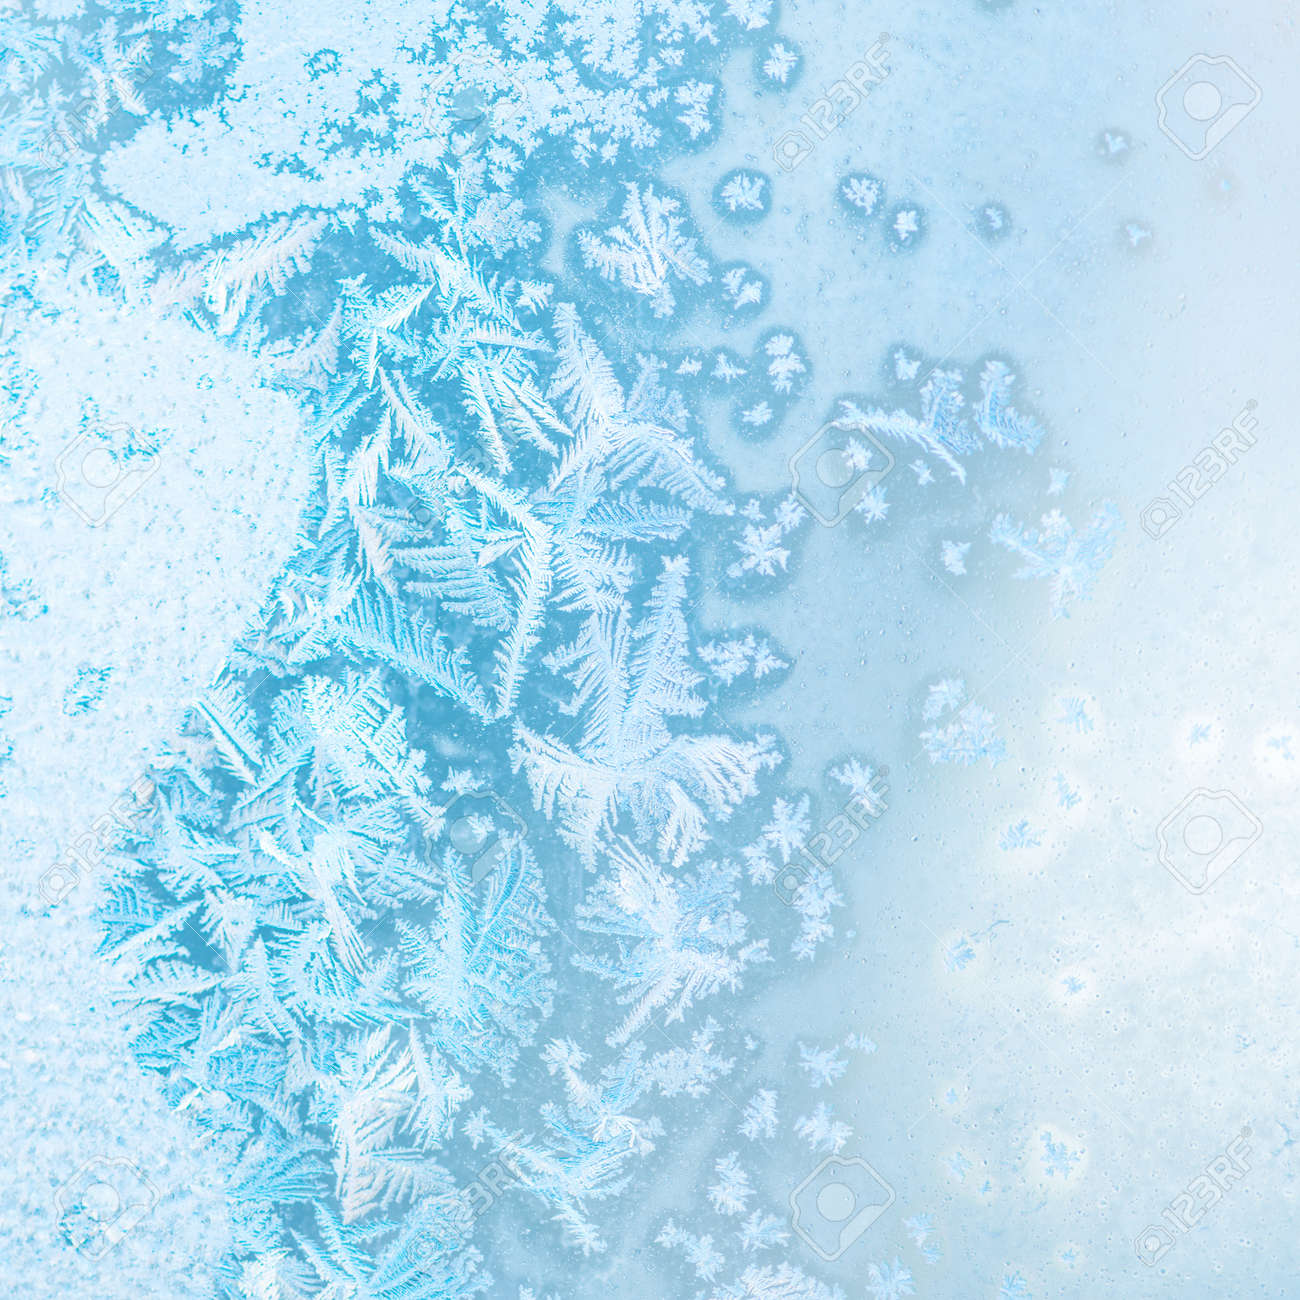 abstract winter ice texture on window, festive background, close up - 51268854